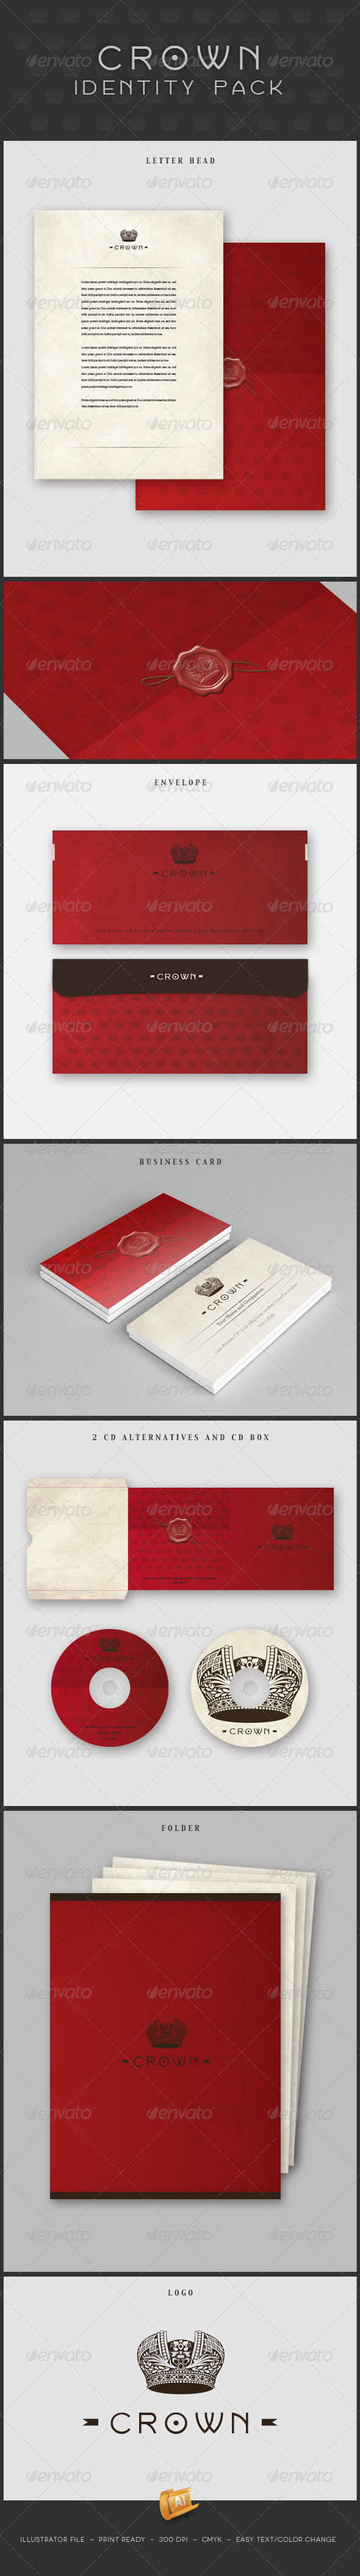 Crown Identity - Stationery Print Templates